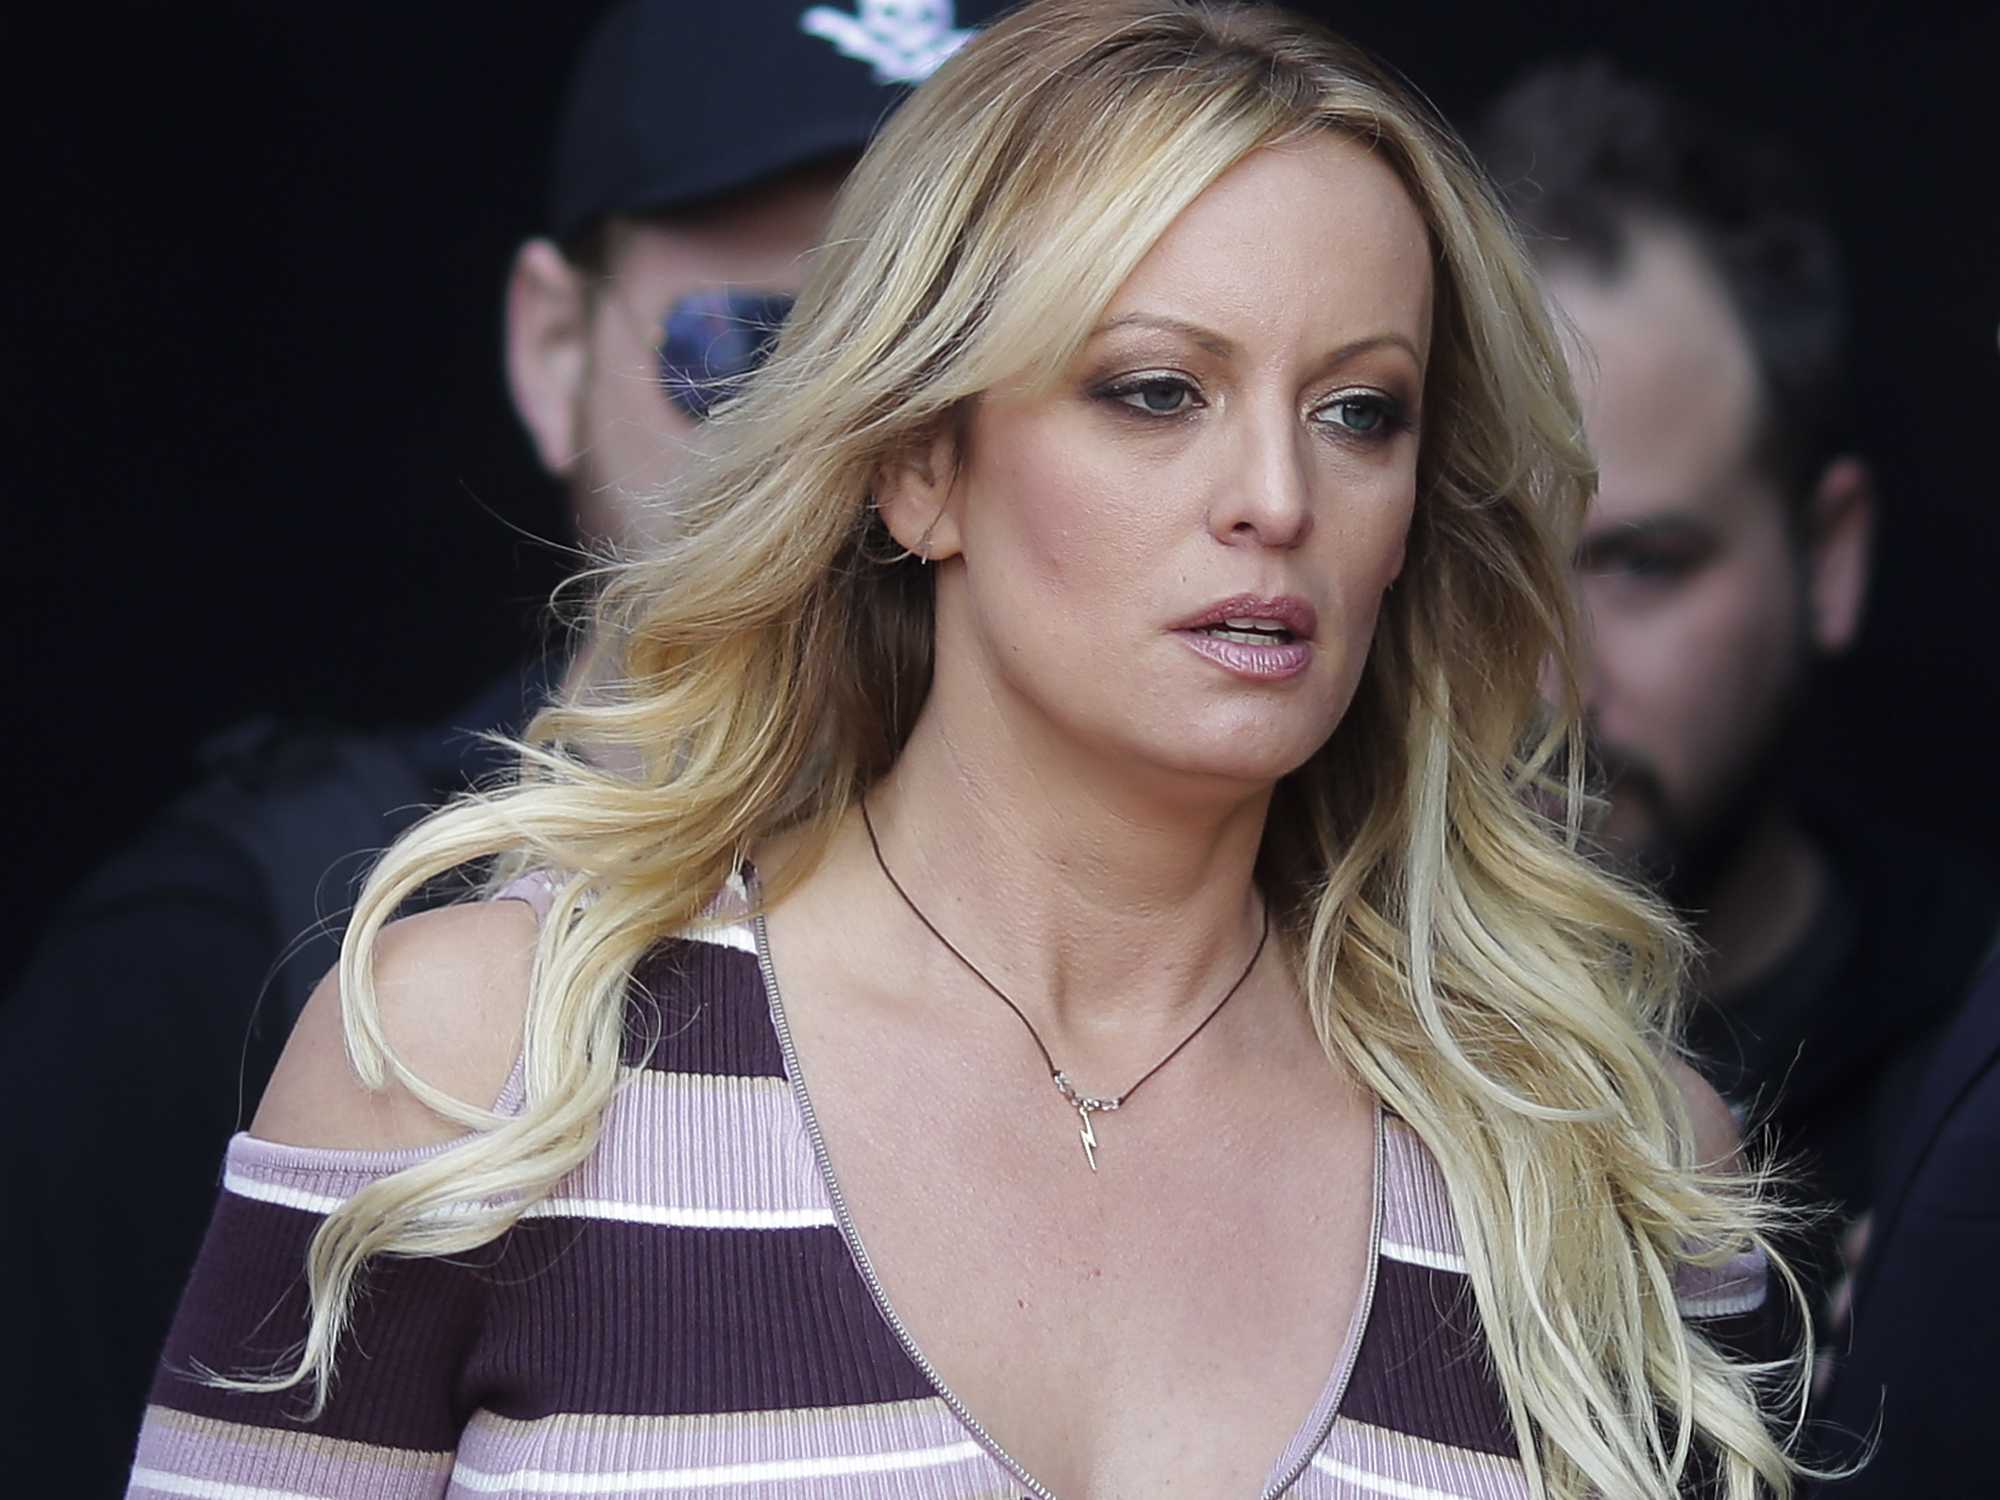 Stormy Daniels Protests Law Raising Age for Exotic Dancers